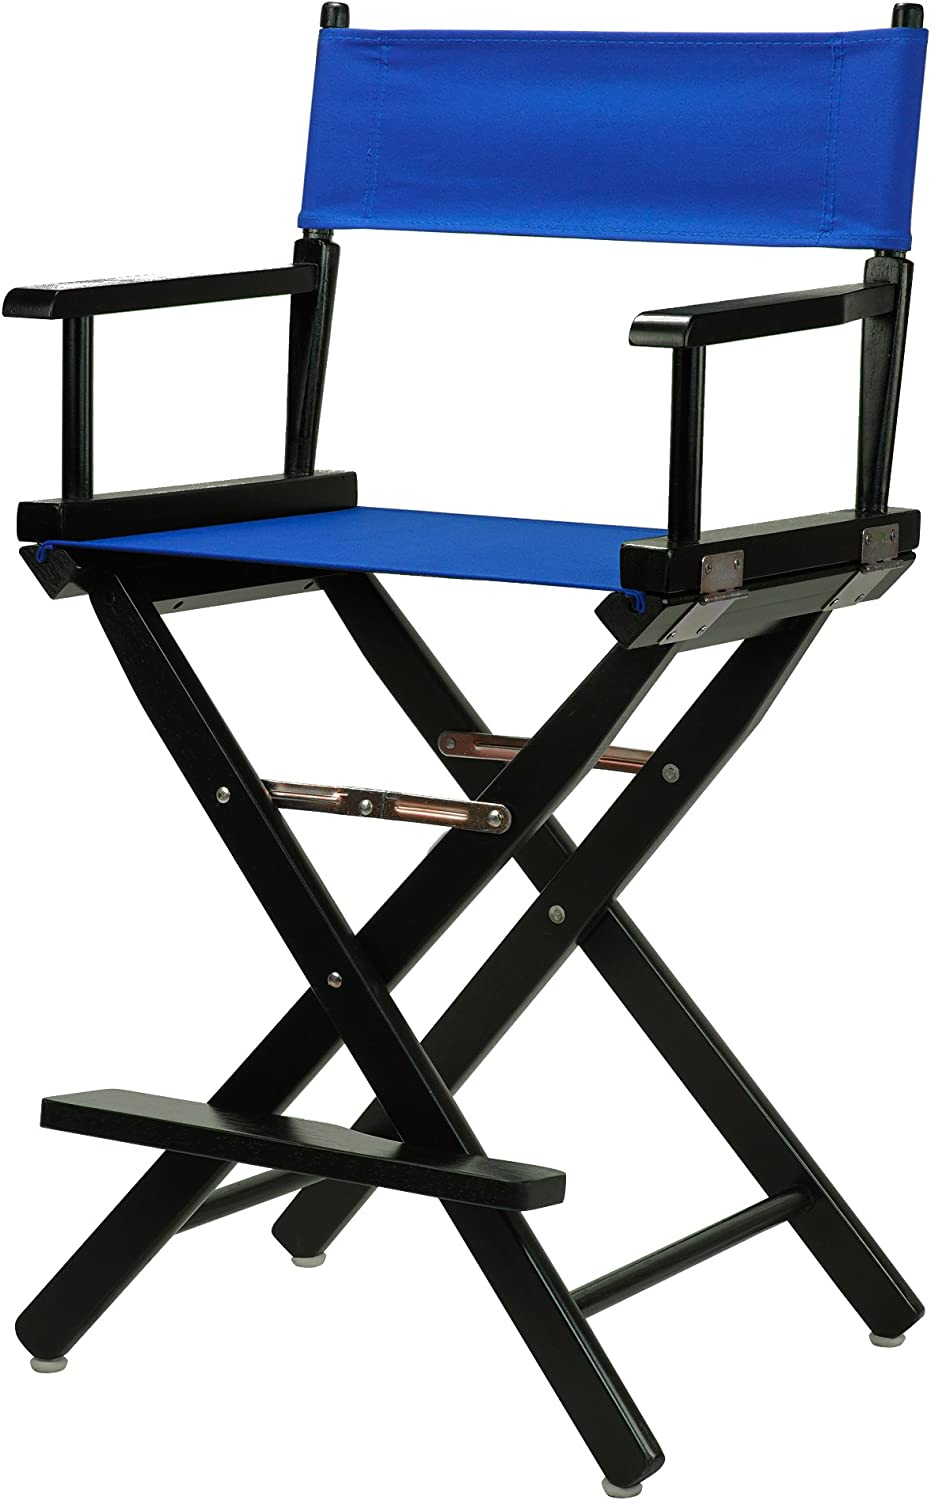 Casual Home 24-Inch Director Chair Black Frame, Royal bluee Canvas